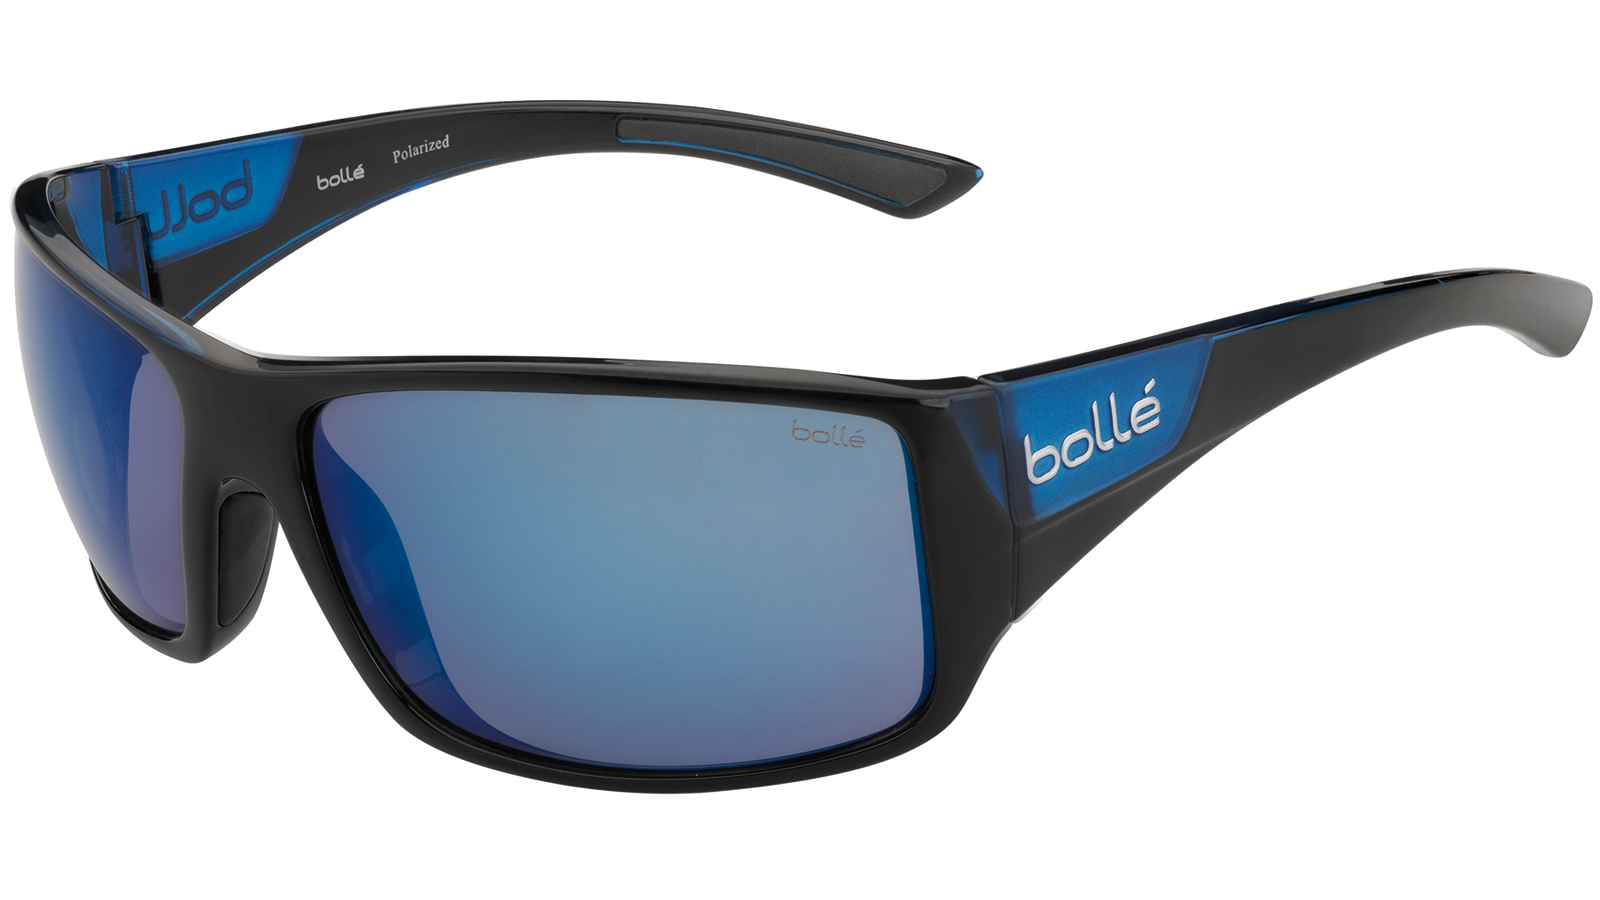 Bolle 11928 Tigersnake Sporting Glasses Shiny Black|Matte Blue Frame Blue Mirror Lens